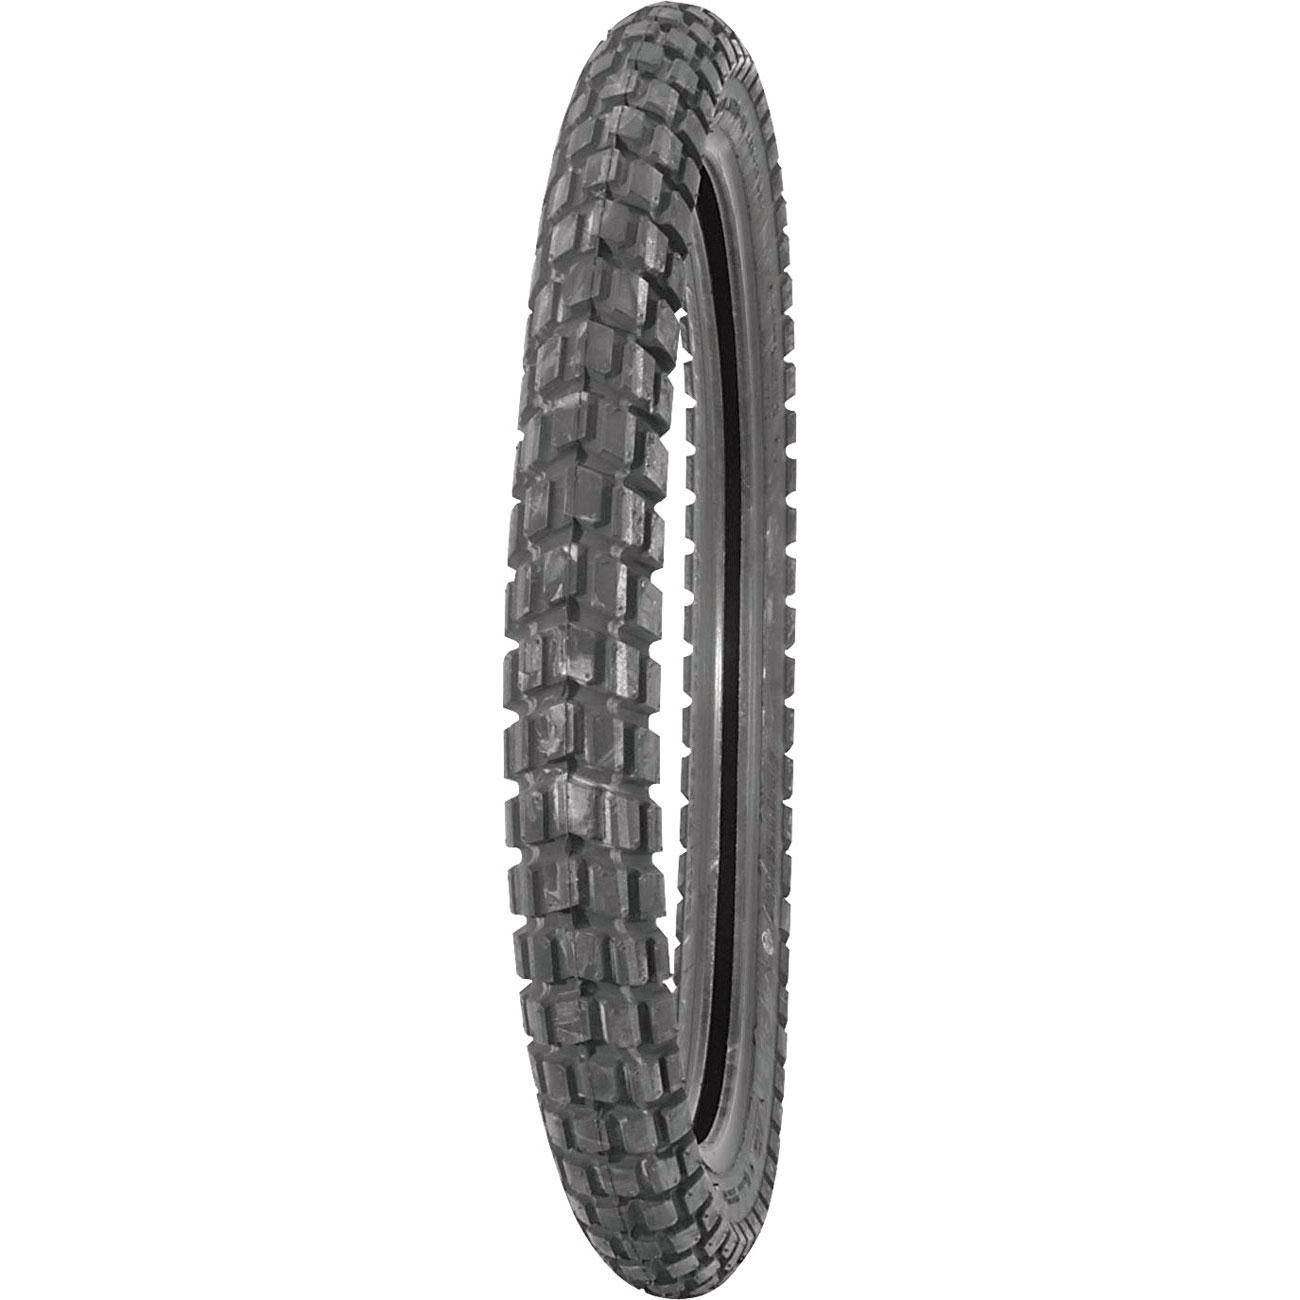 Bridgestone Trail Wing TW41 Dual/Enduro Front Motorcycle Tire 90/90-21